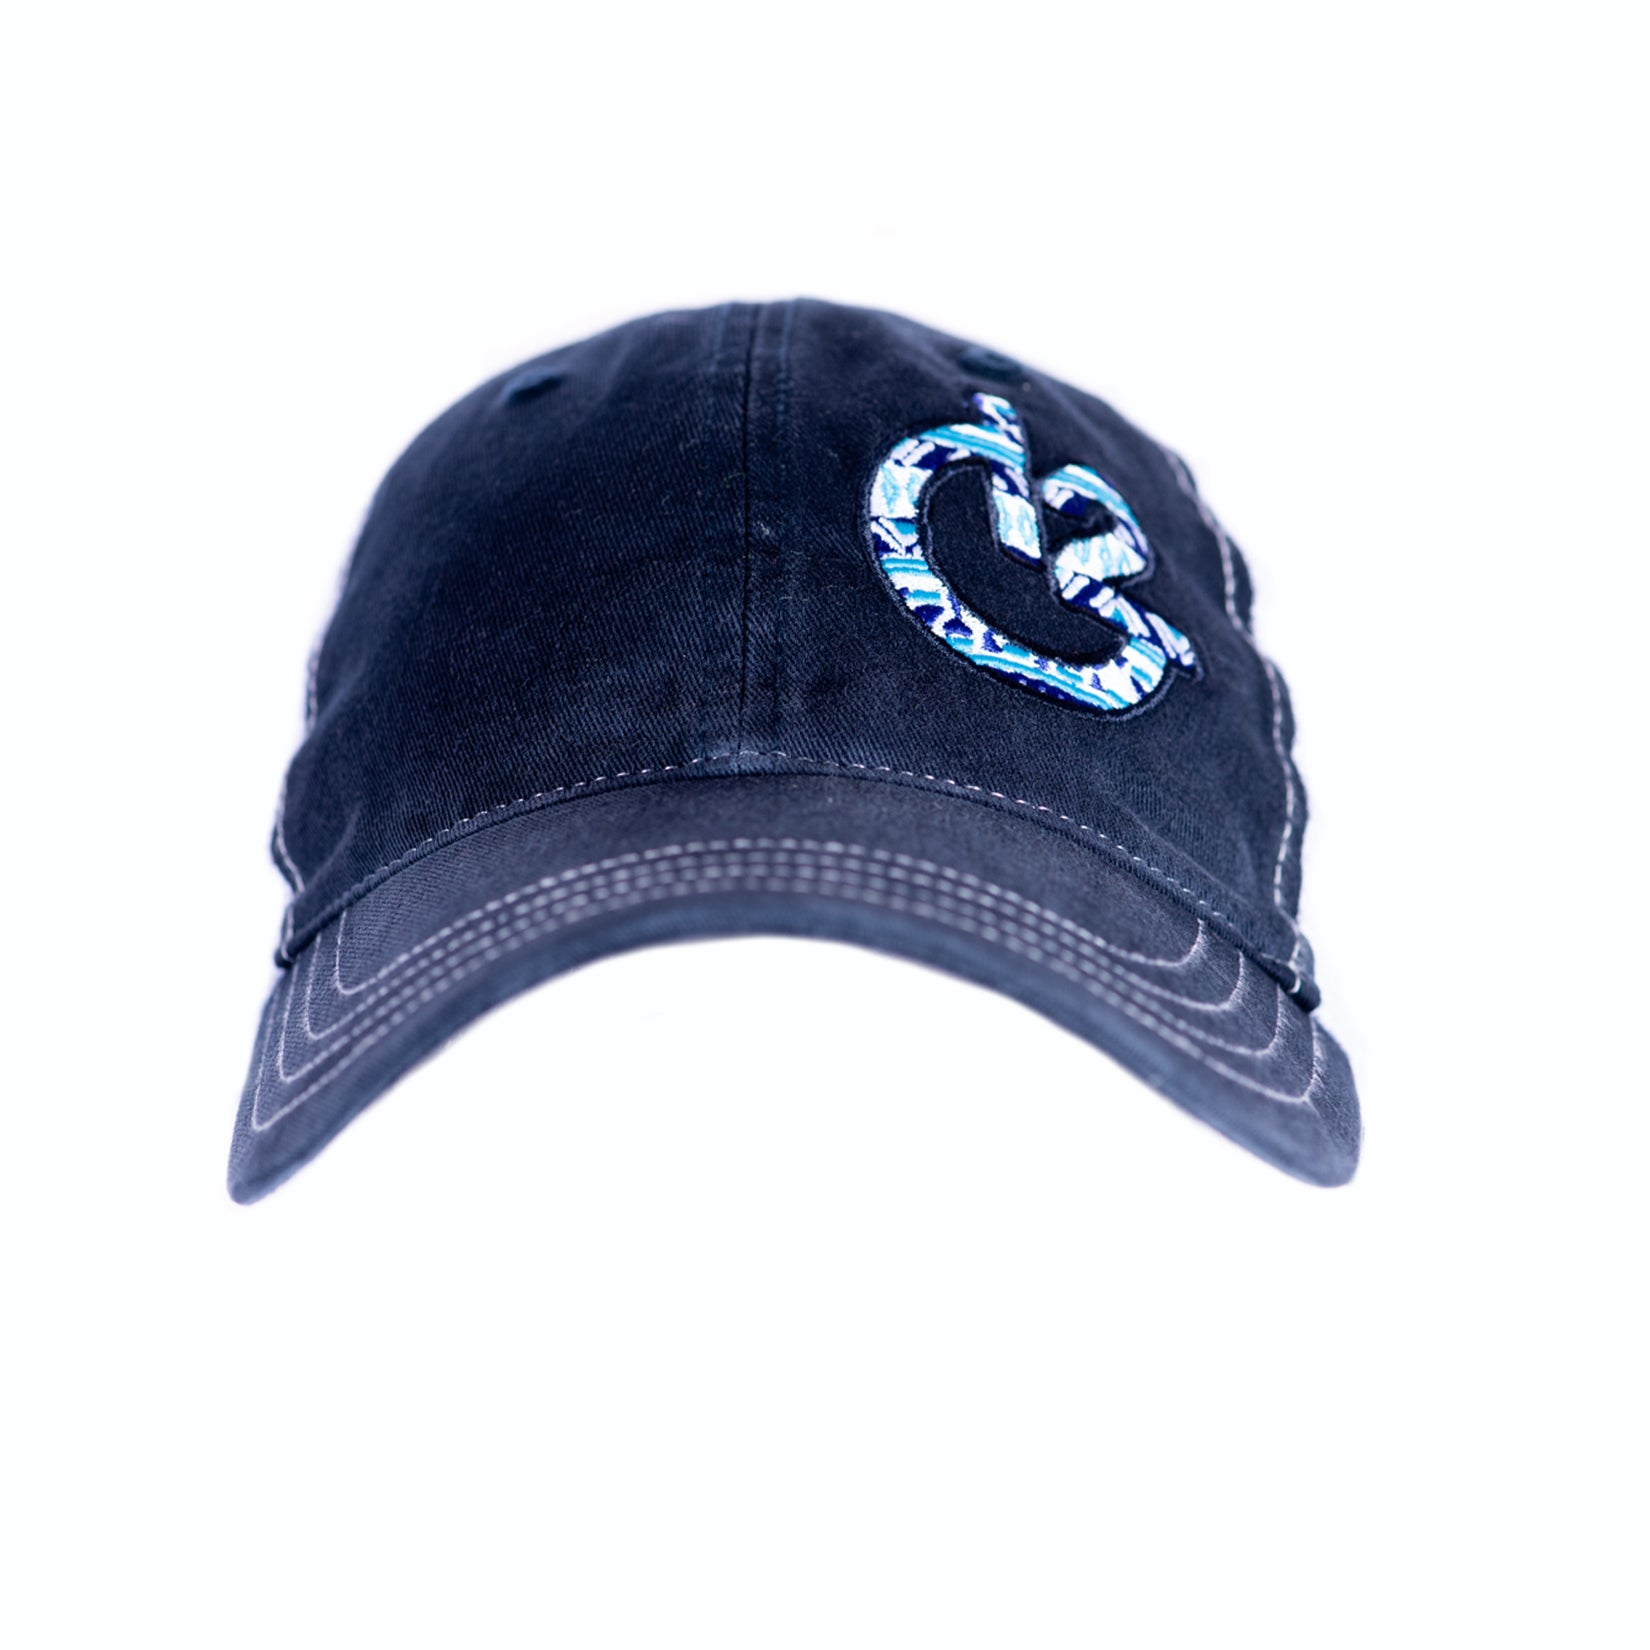 9c209f3bced5b 12 Gauge Ranch Aztec Navy and White Low Profile Baseball Hat